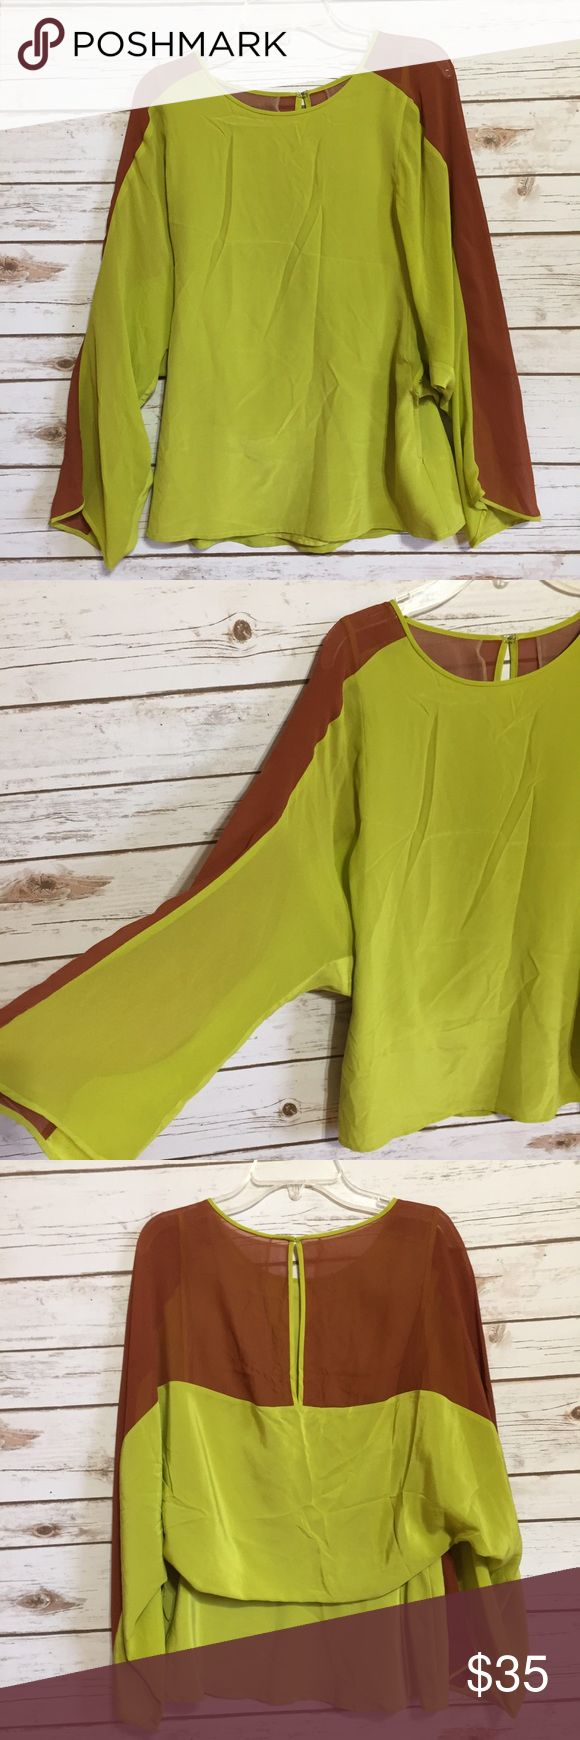 💜BCBG Maxazria Runway silk color block blouse top Size XS. Chartreuse & copper. Dolman sleeves. Keyhole opening in back. 100% silk. EUC  💟Fast 1-2 day shipping 💟Reasonable offers accepted 💟Purchase 3 or more items & get a special bundle rate!  💟Smoke-free home BCBGMaxAzria Tops Blouses